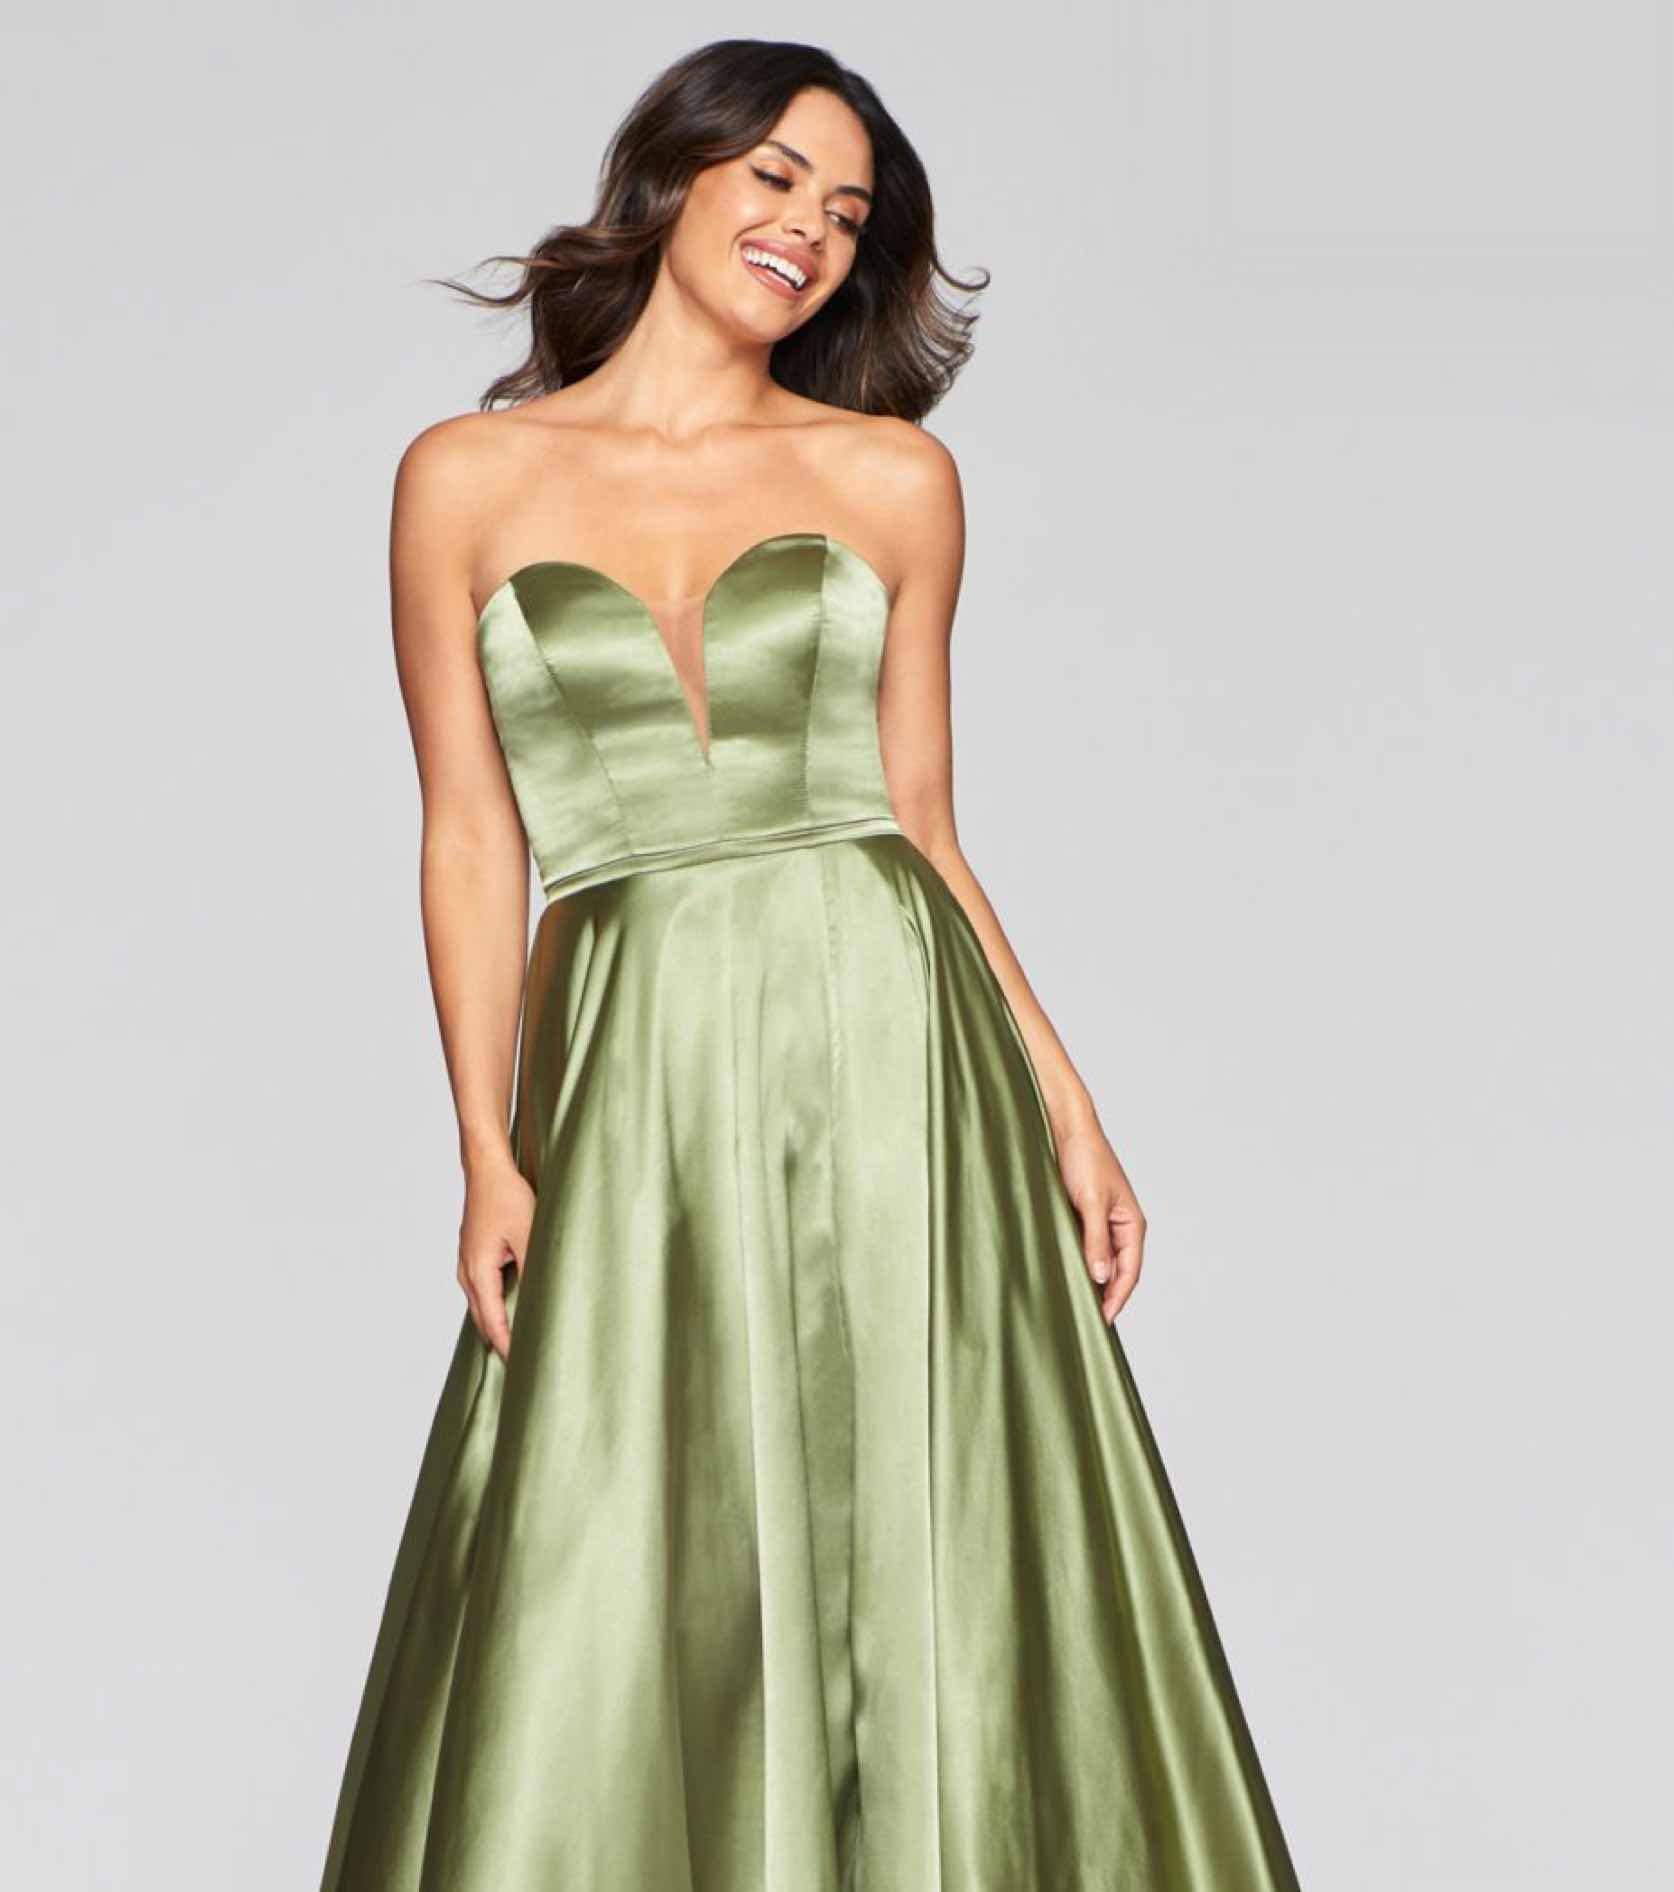 Model in green satin Faviana dresses